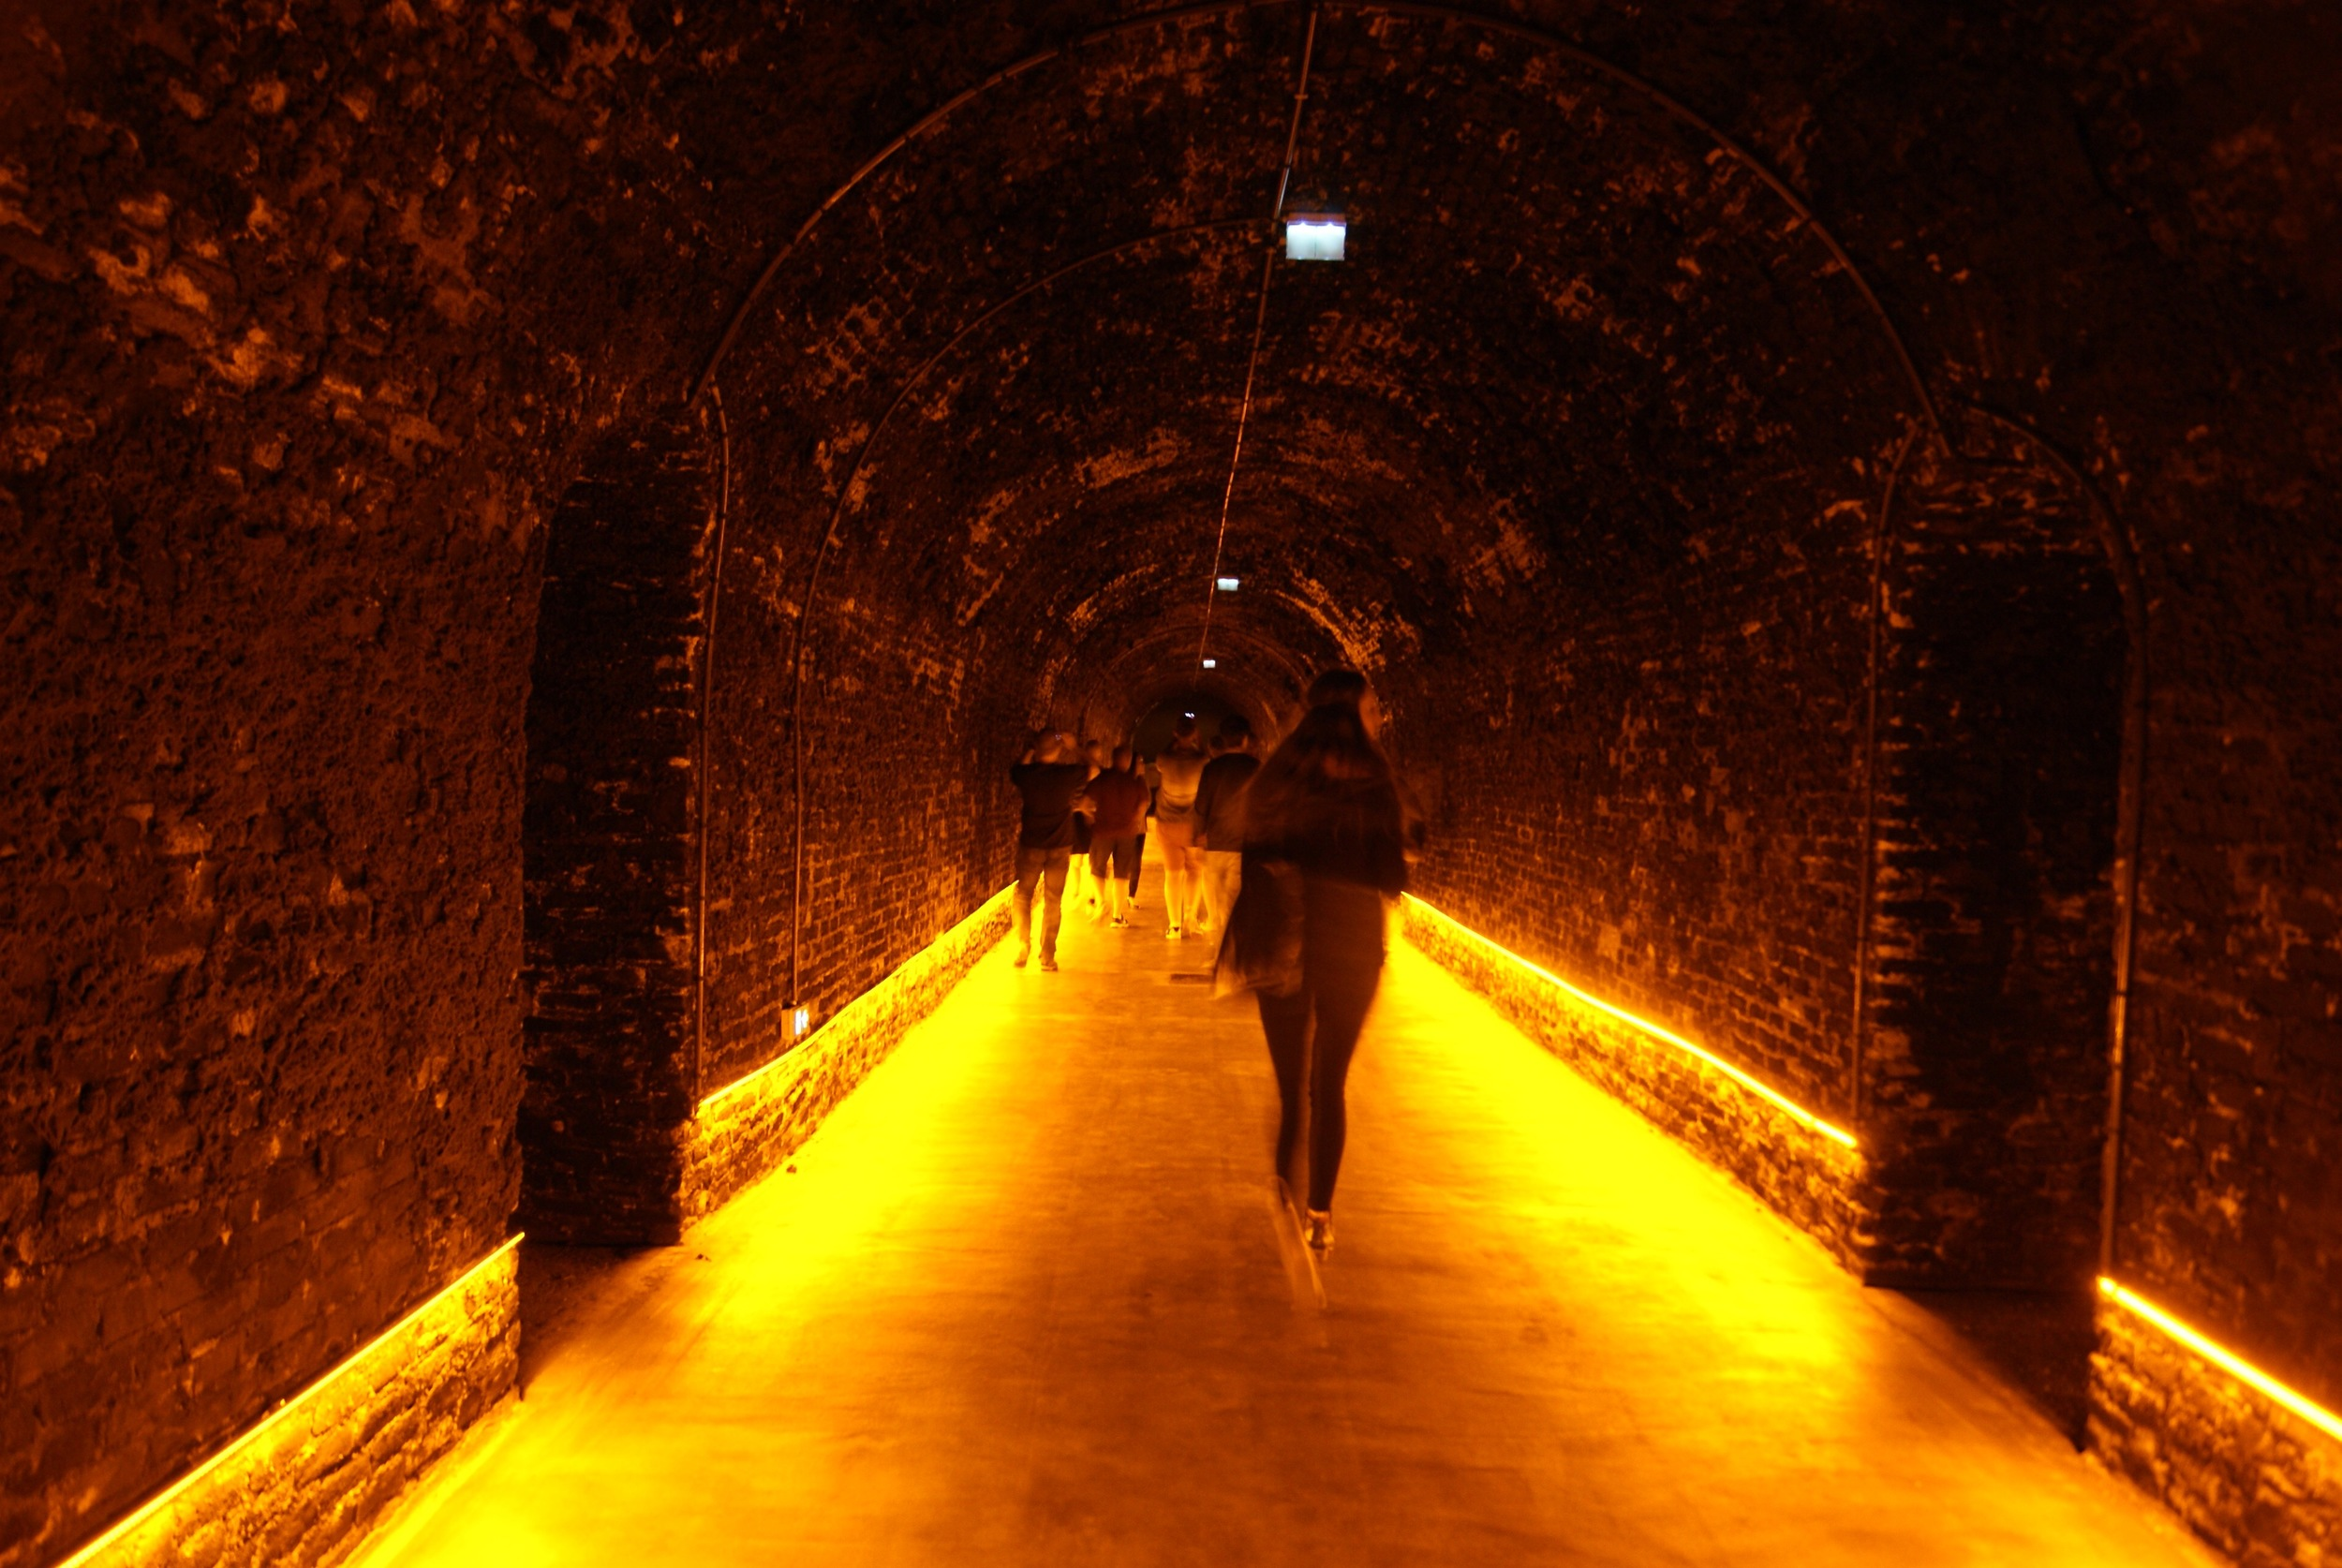 Walking in Lansons Caves...they use special light bulbs that do not create heat and gives an orange glow to photos.